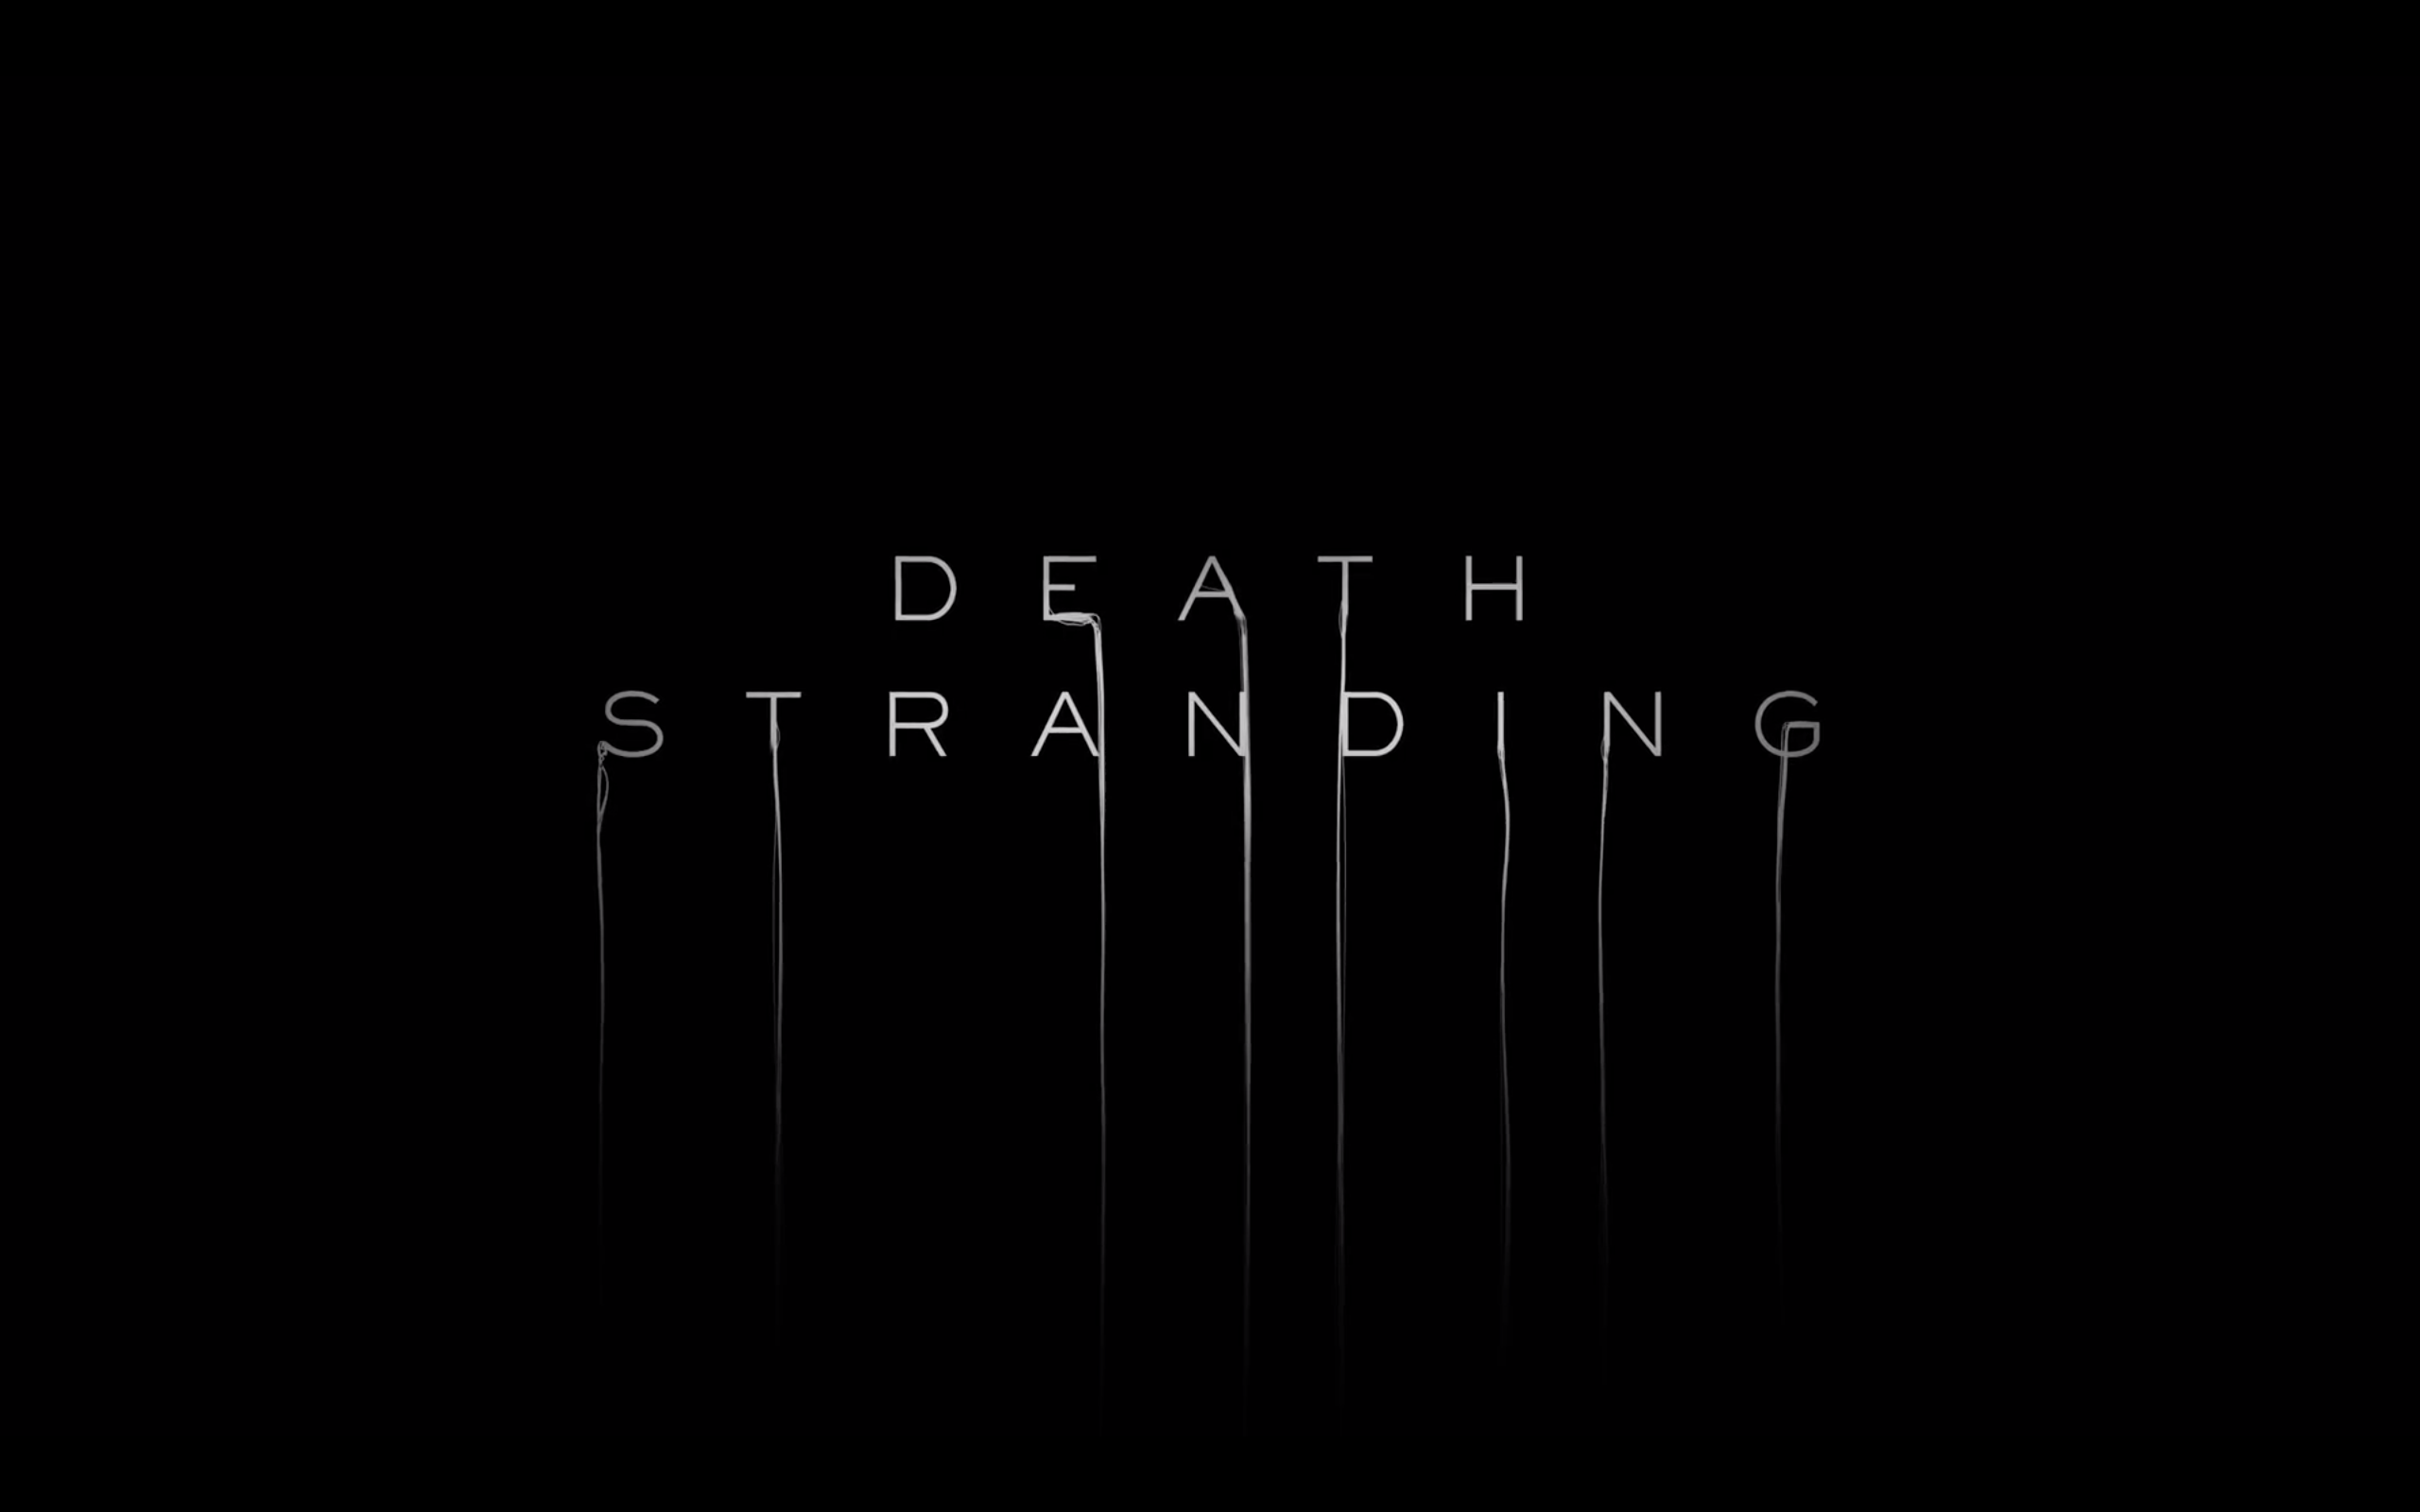 New Death Stranding Trailer